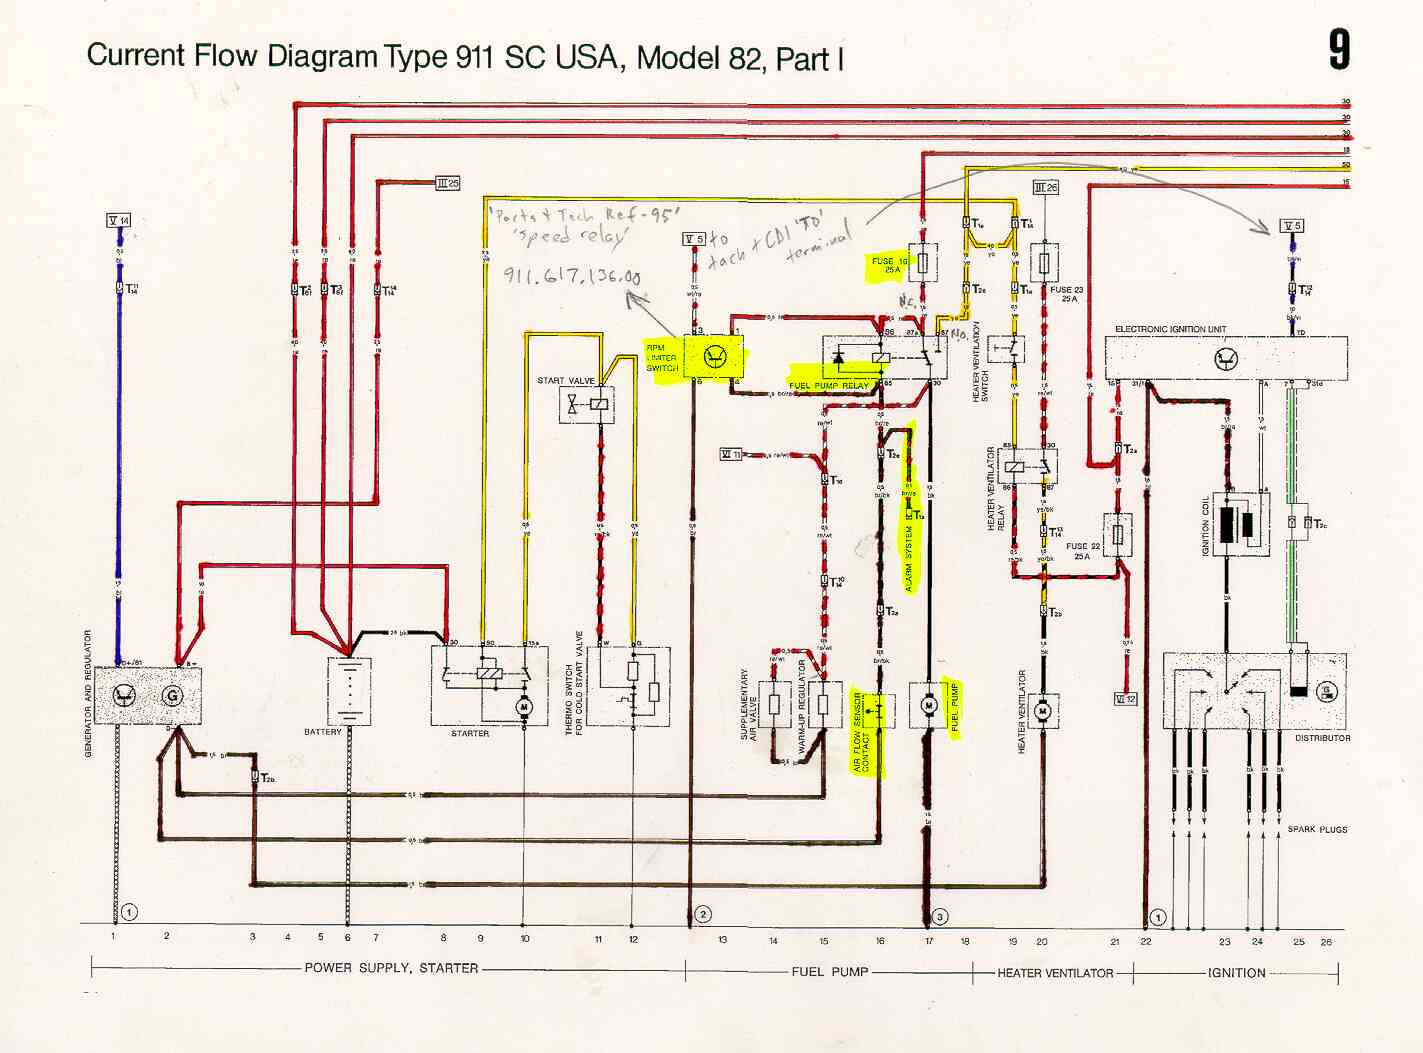 1966 Porsche 912 Wiring Diagram Schematic Wiring Diagram Report A Report A Maceratadoc It